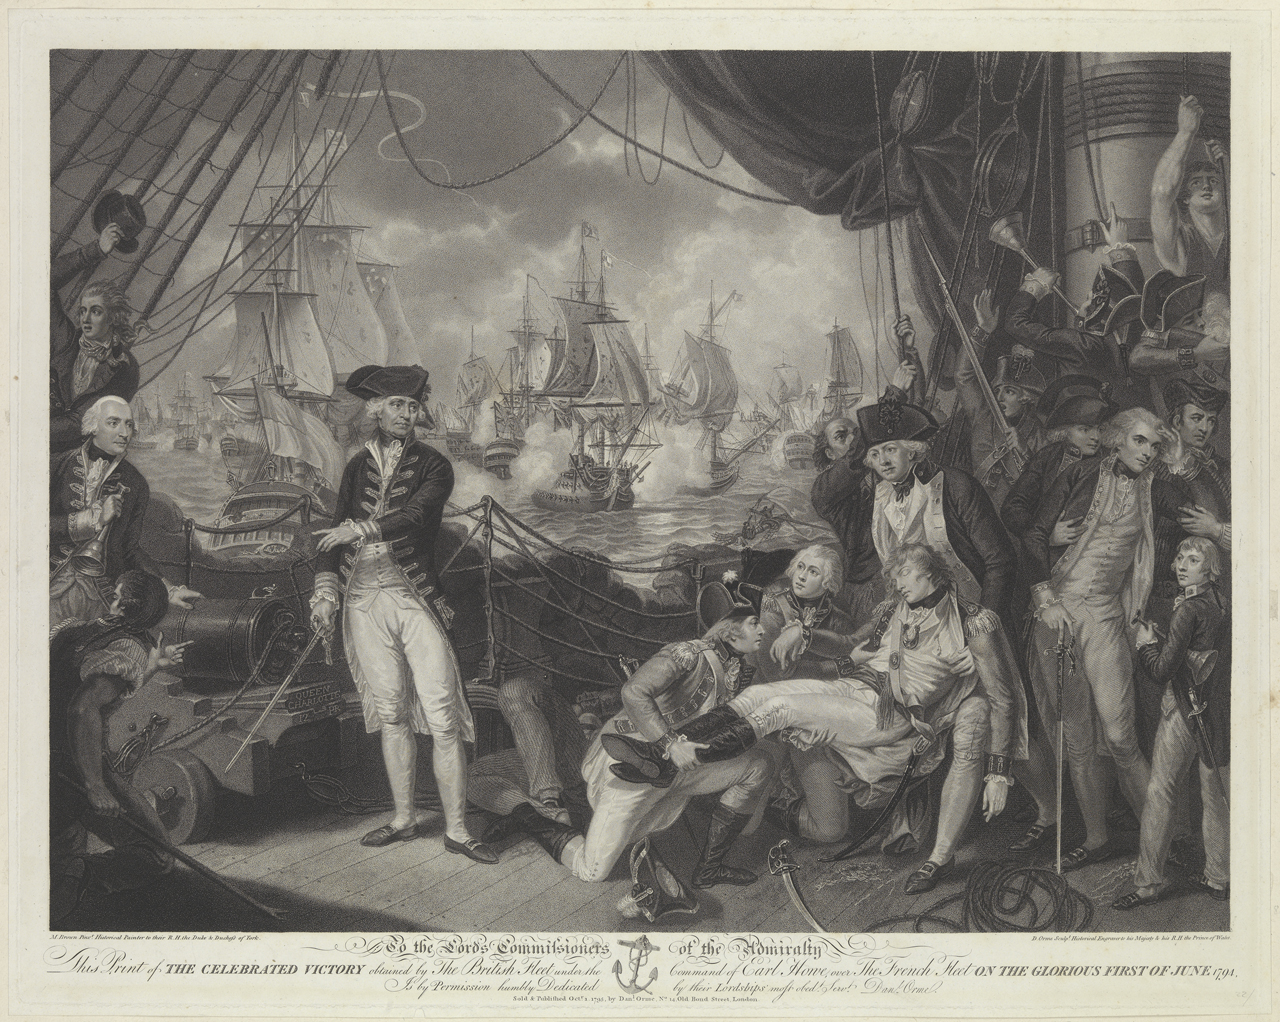 To The Lords Commissioners This Print Of Celebrated Victory Obtained By British Fleet Under